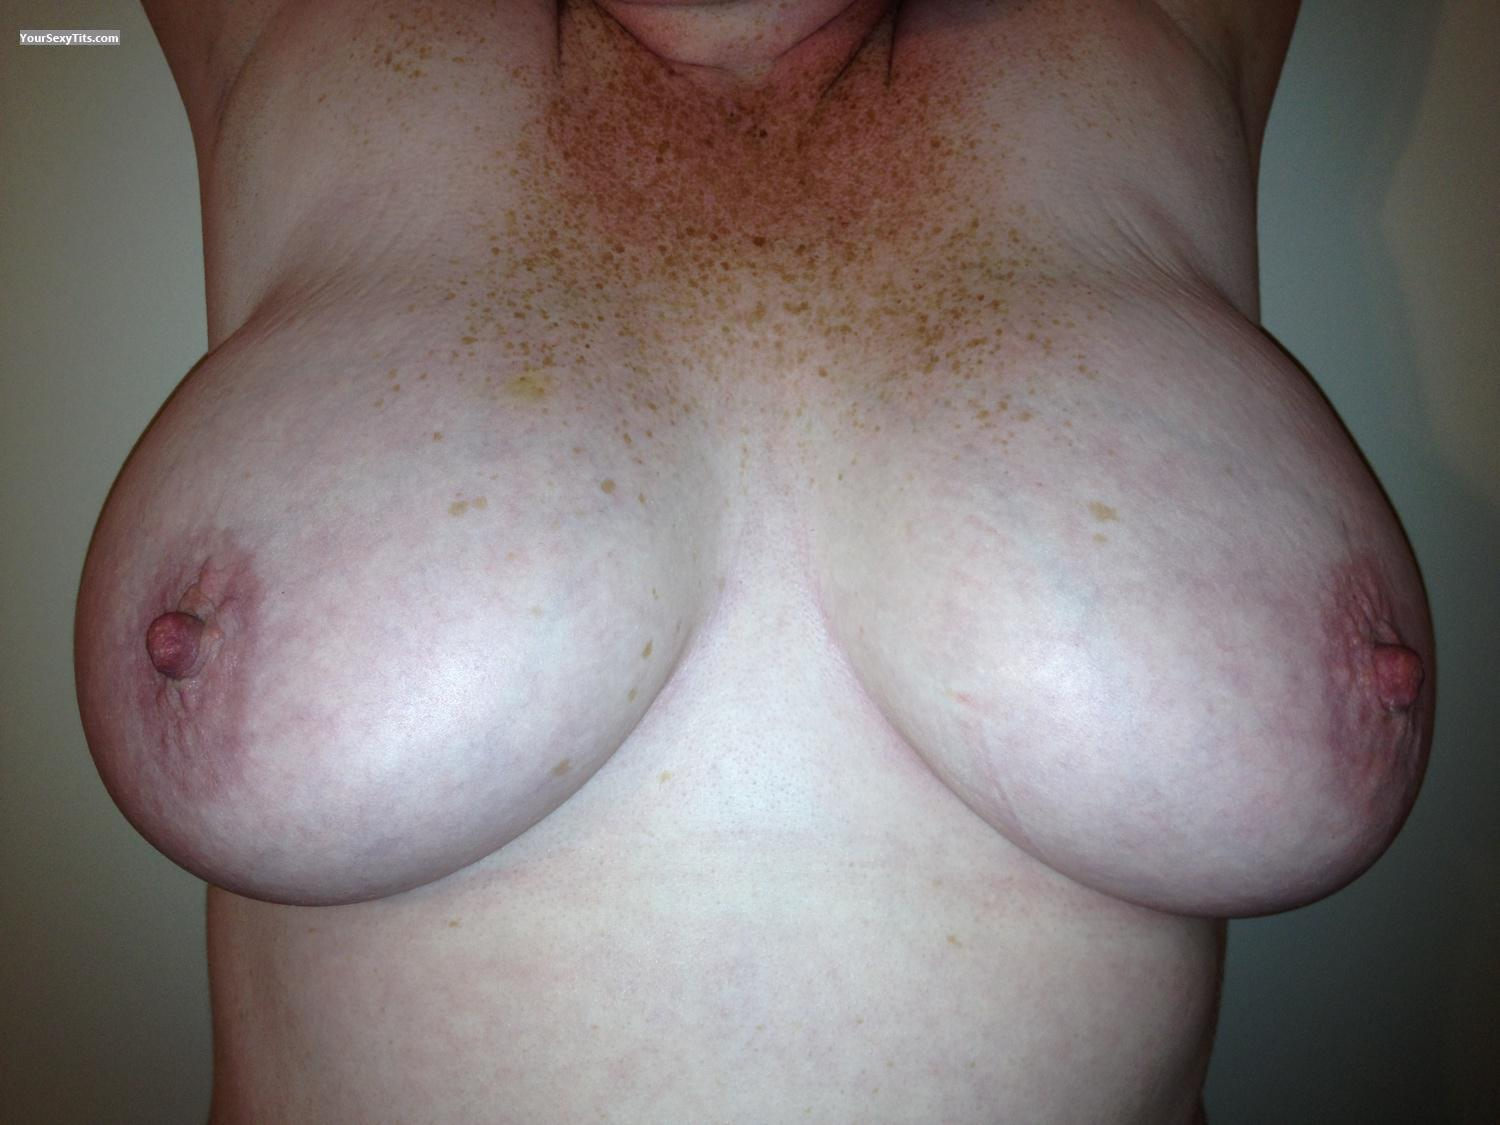 Tit Flash: Very Big Tits By IPhone - Babybug from United States